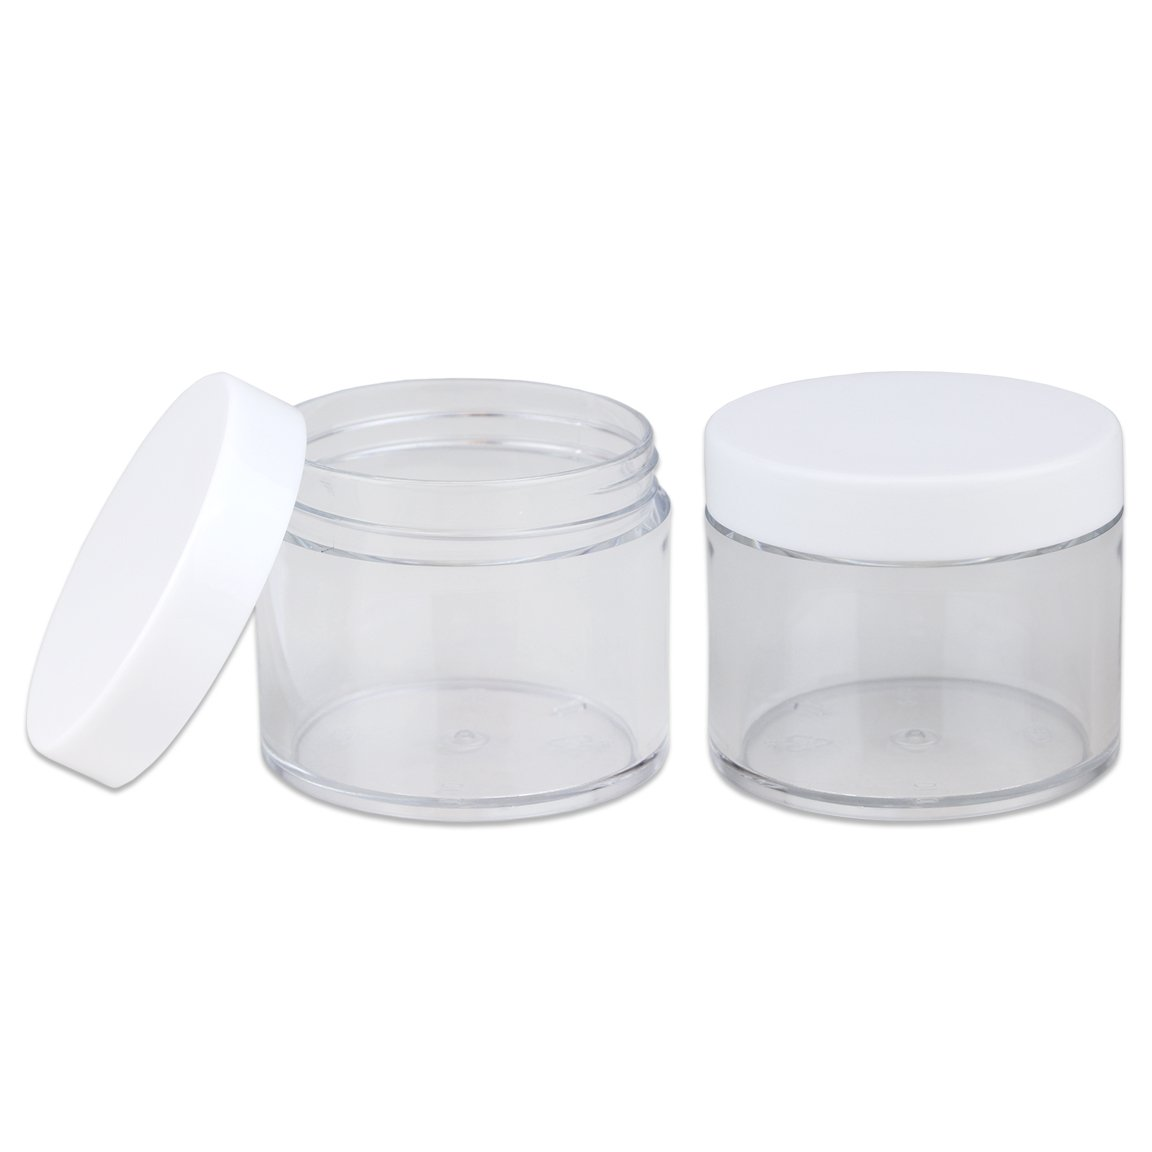 Beauticom 60 Grams/60 ML (2 Oz) Round Clear Leak Proof Plastic Container Jars with White Lids for Travel Storage Makeup Cosmetic Lotion Scrubs Creams Oils Salves Ointments (12 Jars) by Beauticom® (Image #3)